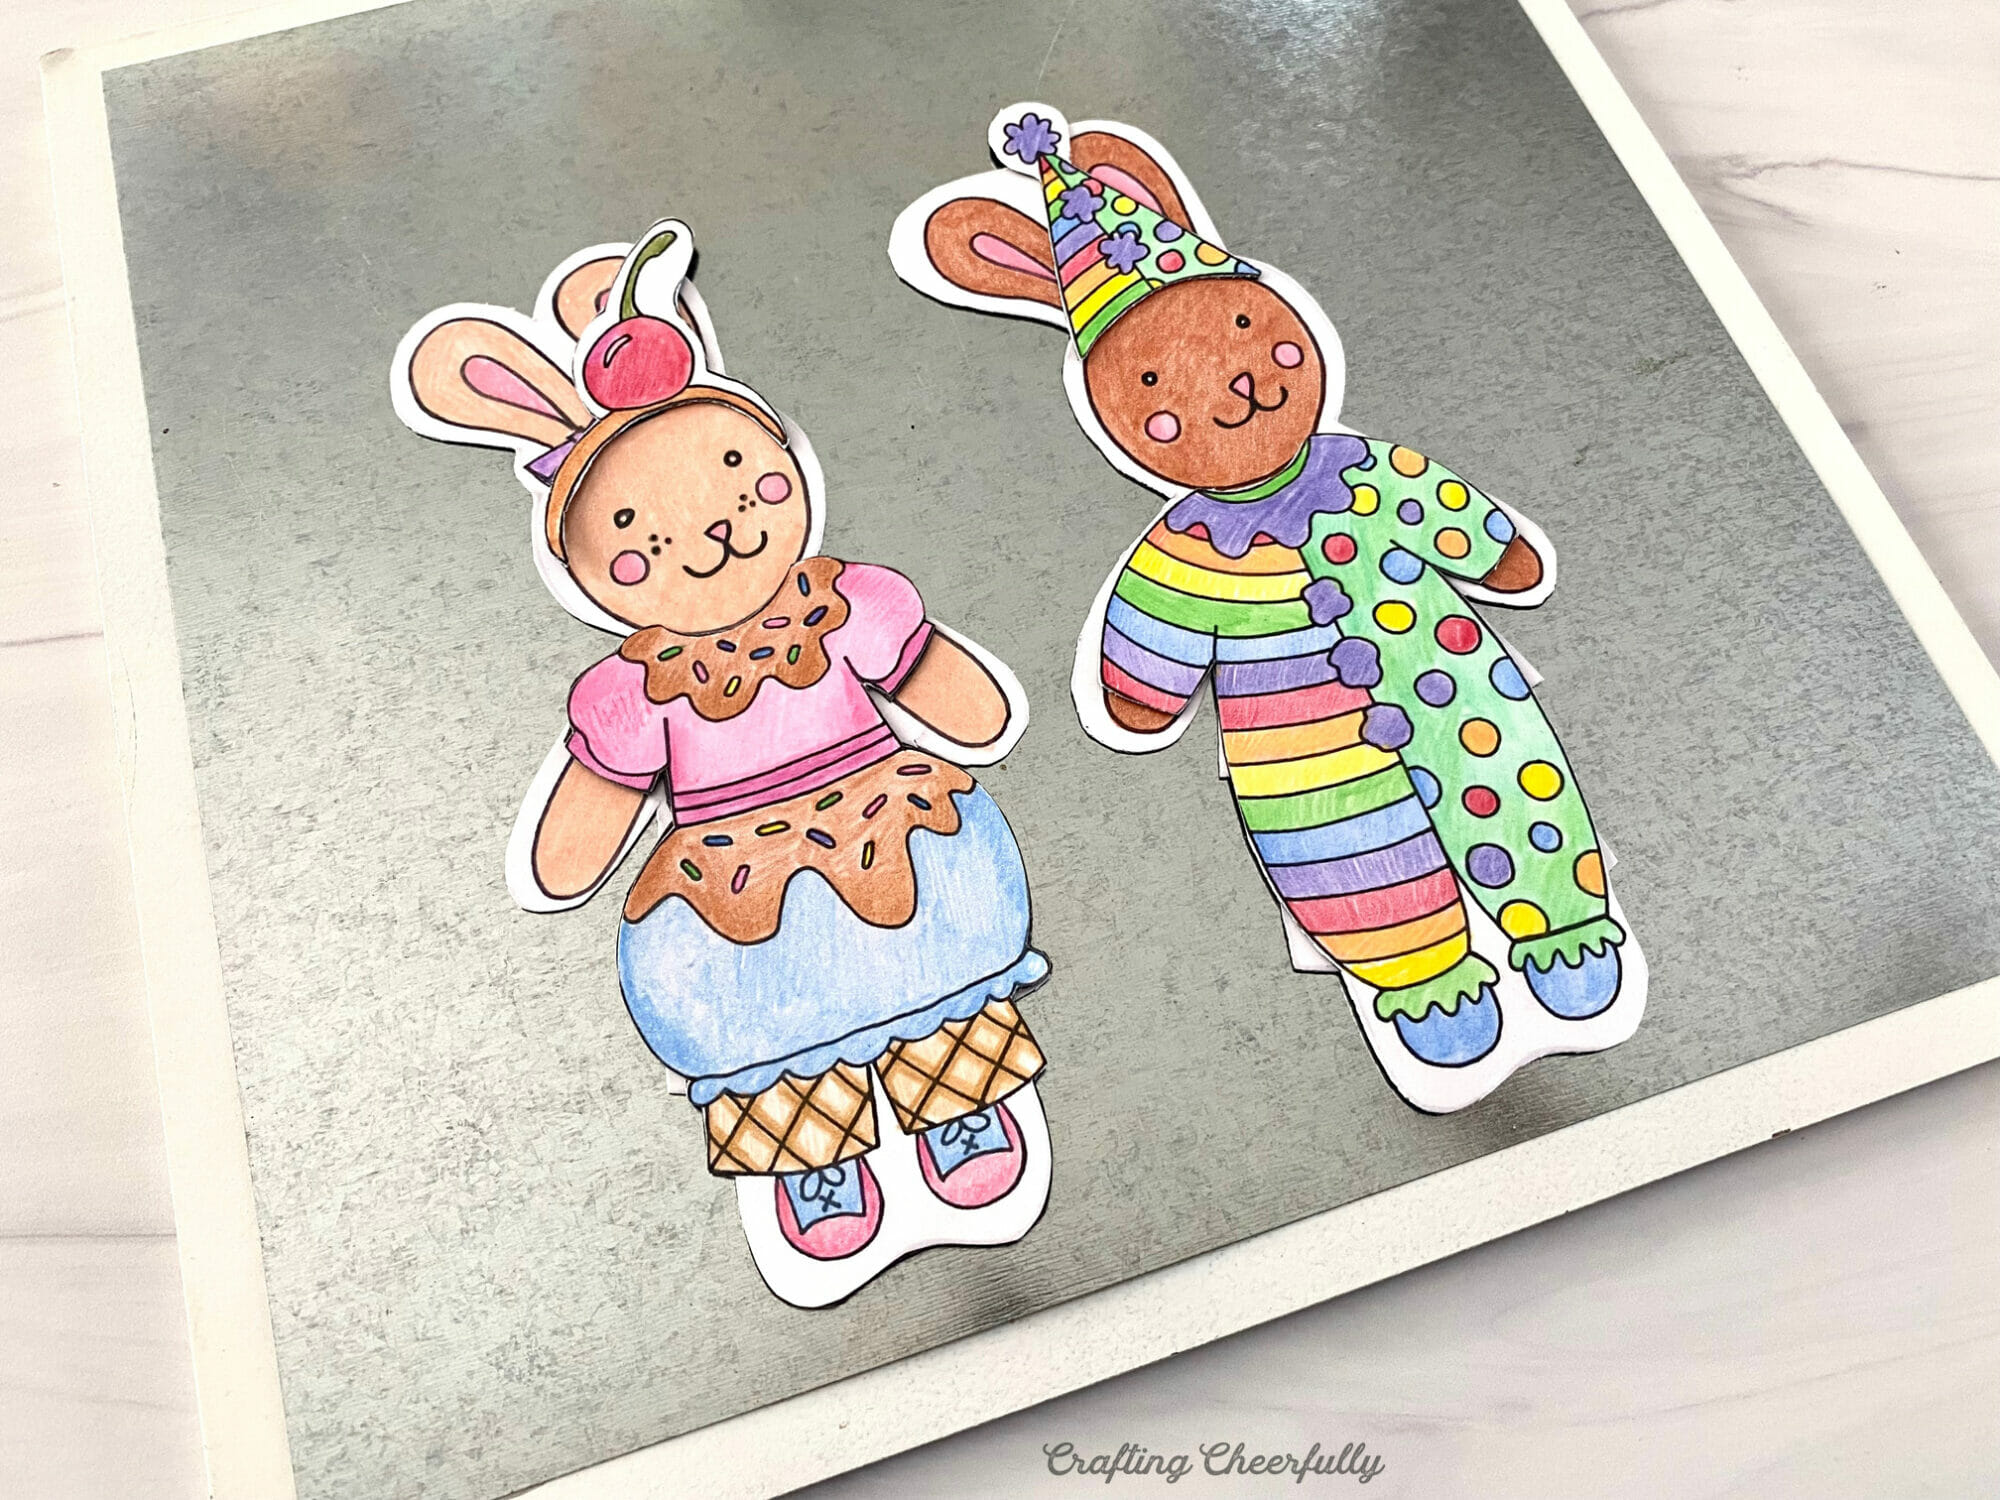 Bunny paper dolls dressed in Halloween costumes are stuck to a magnetic dry erase board laying on a purple surface.